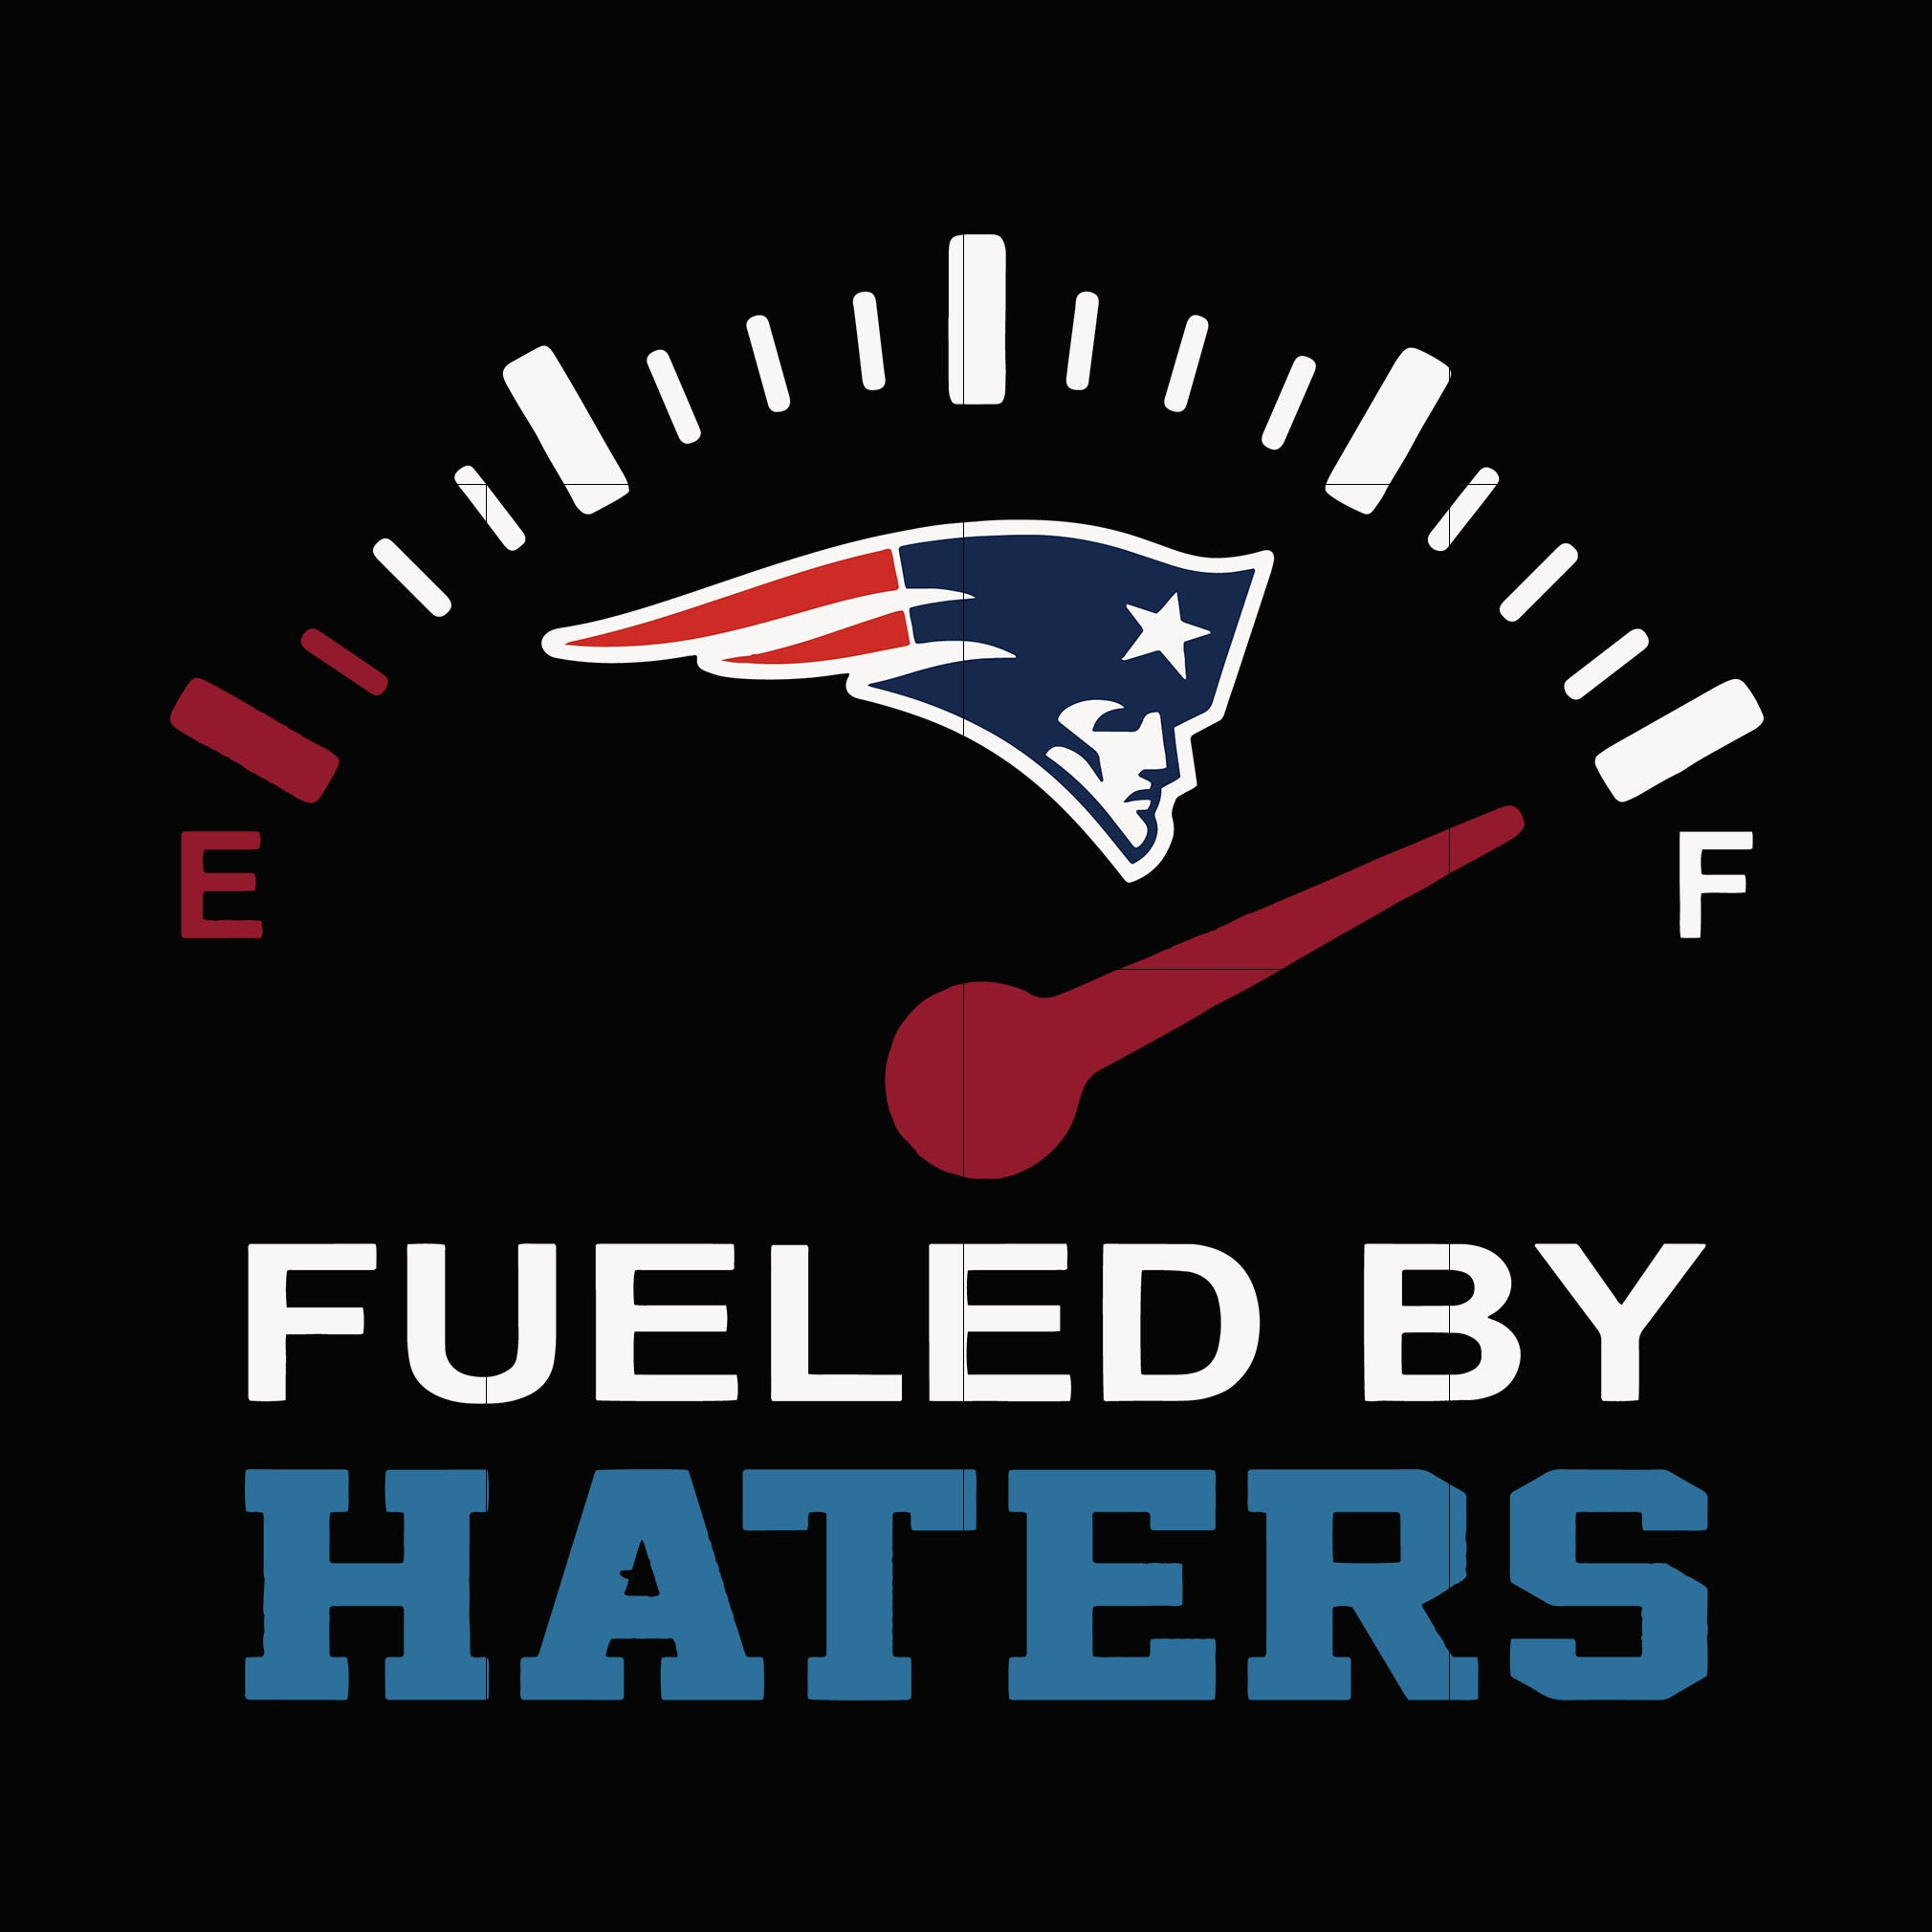 Patriots fueled by haters svg, patriots svg, patriots svg for cut